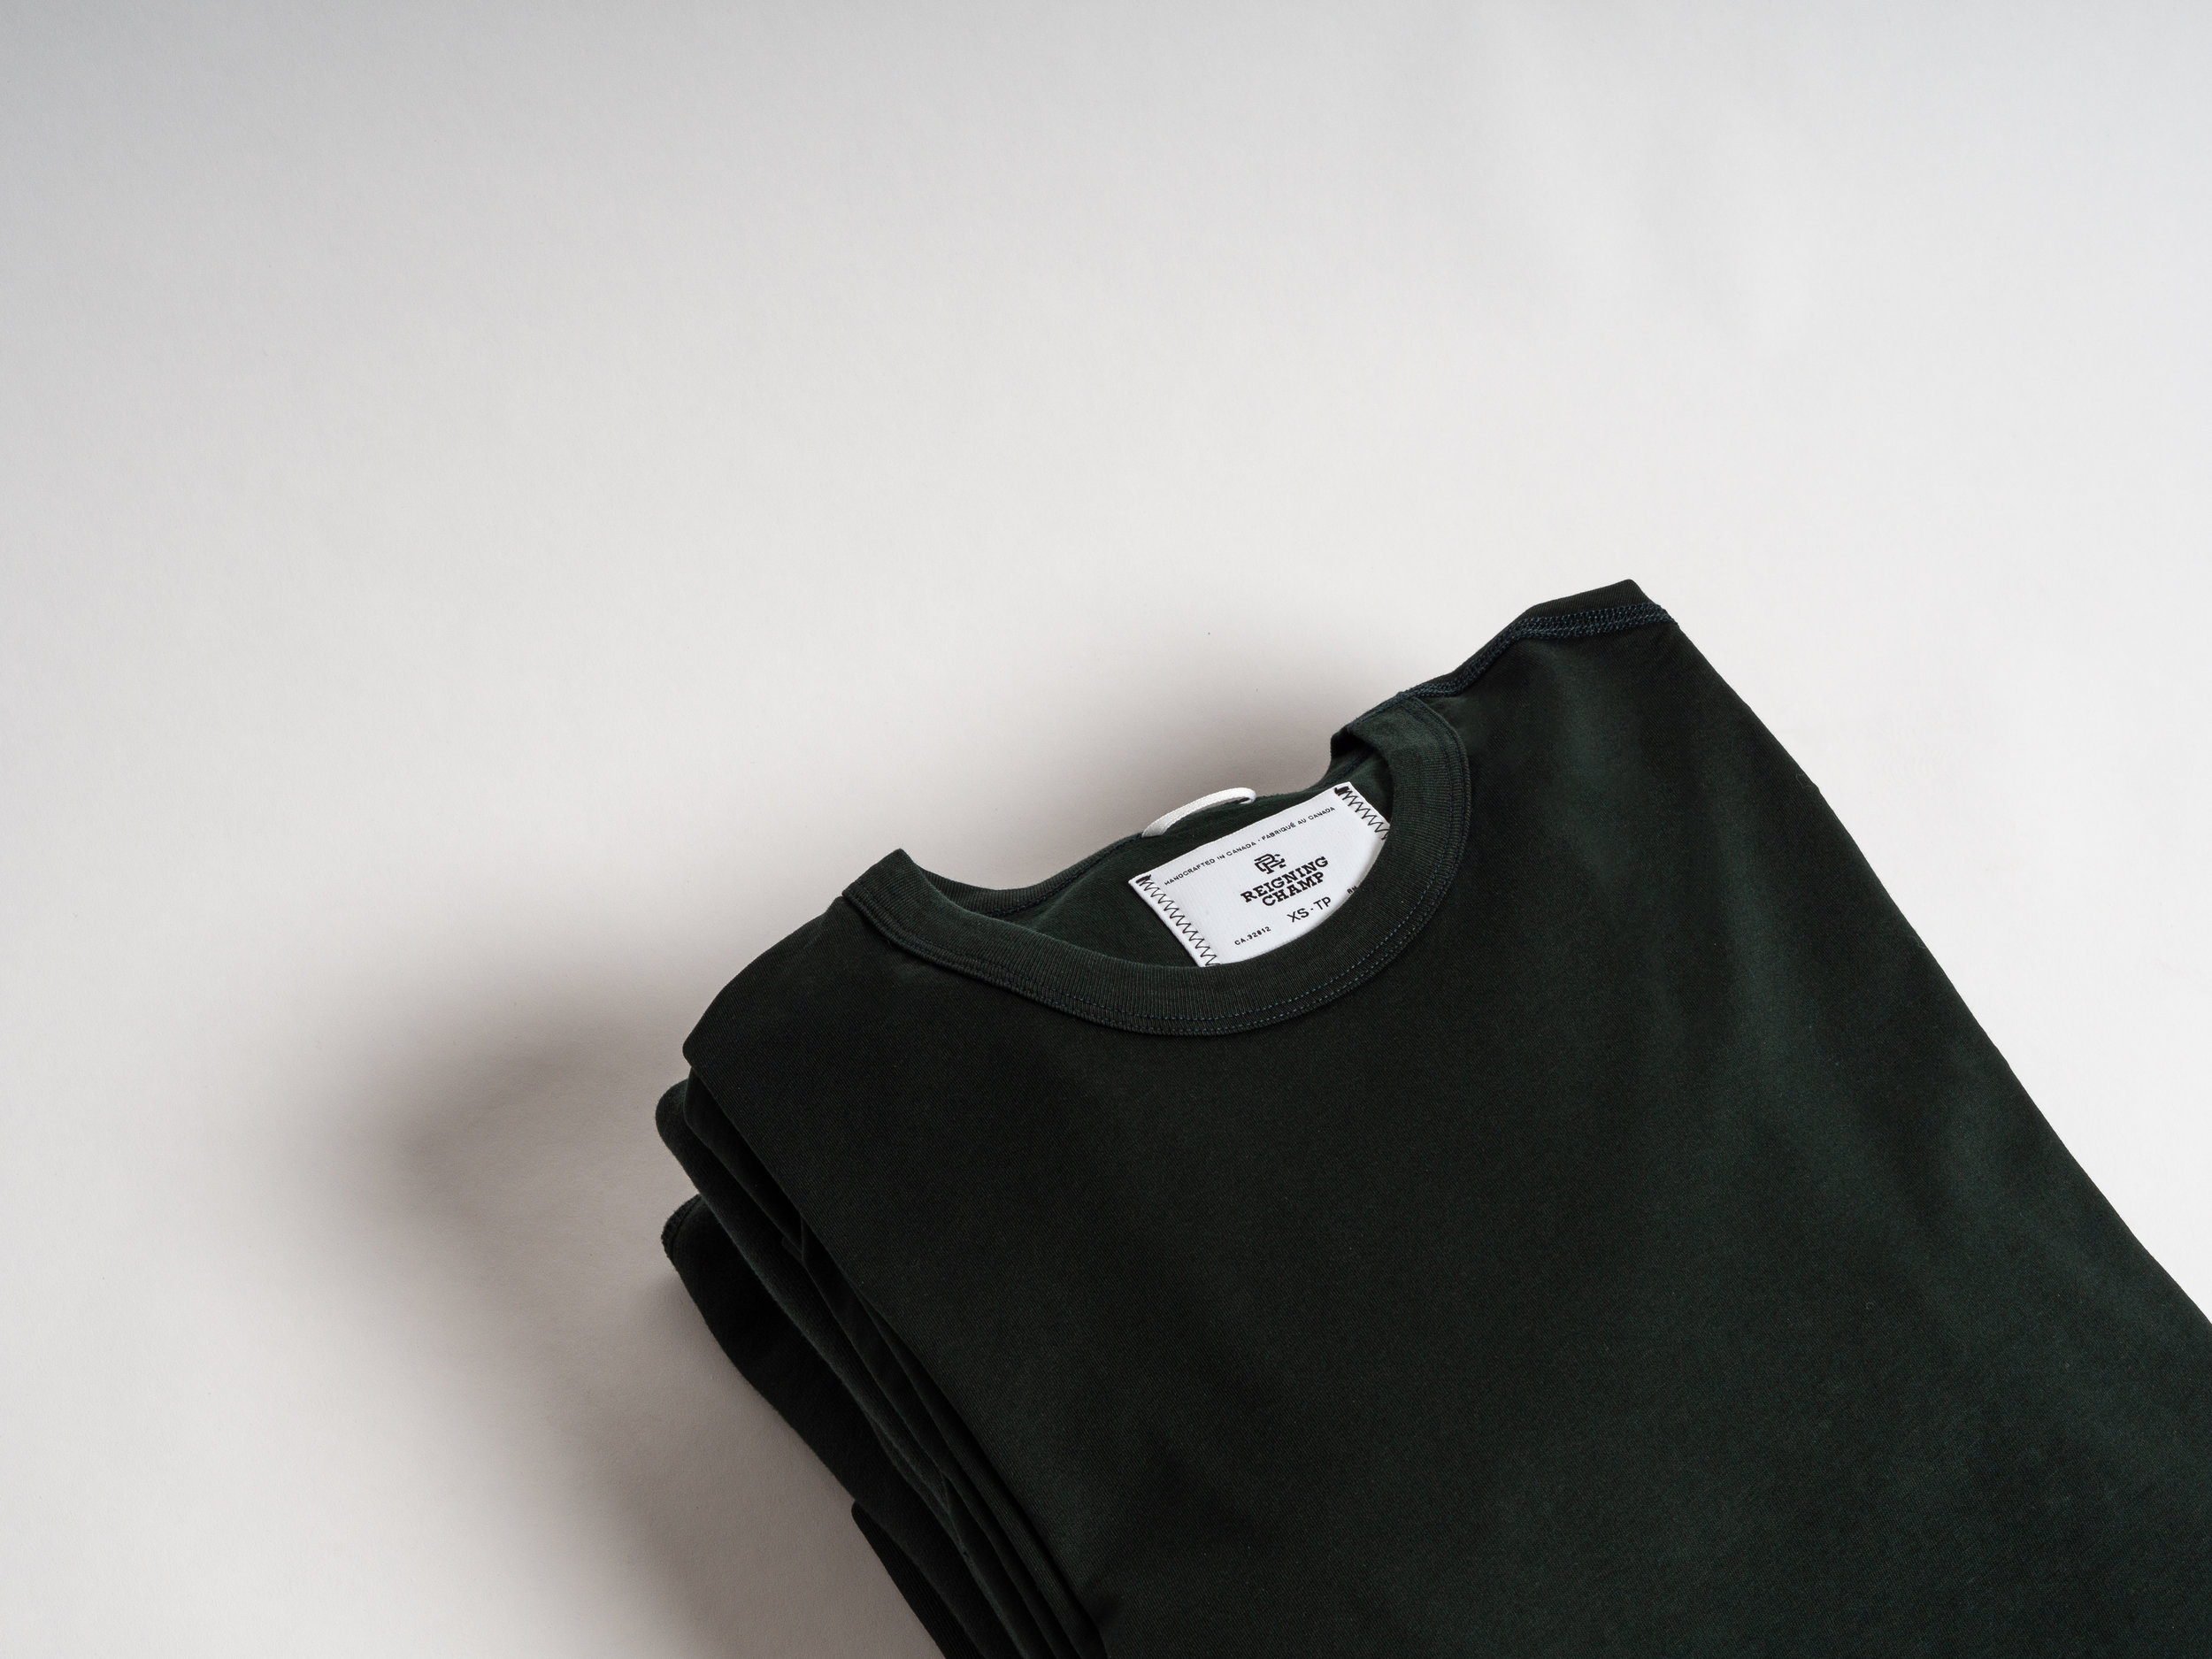 Reigning Champ Forest Green Pack - The core Midweight Terry and Ringspun Jersey offerings from Reigning Champ are now available in a seasonal Forest Green; part of their 2019 Varsity Pack. The pack is made with low-abrasion flat locked seams, and a durable 100% cotton rib for the highest level of comfort. The Varsity Pack is made in Canada.